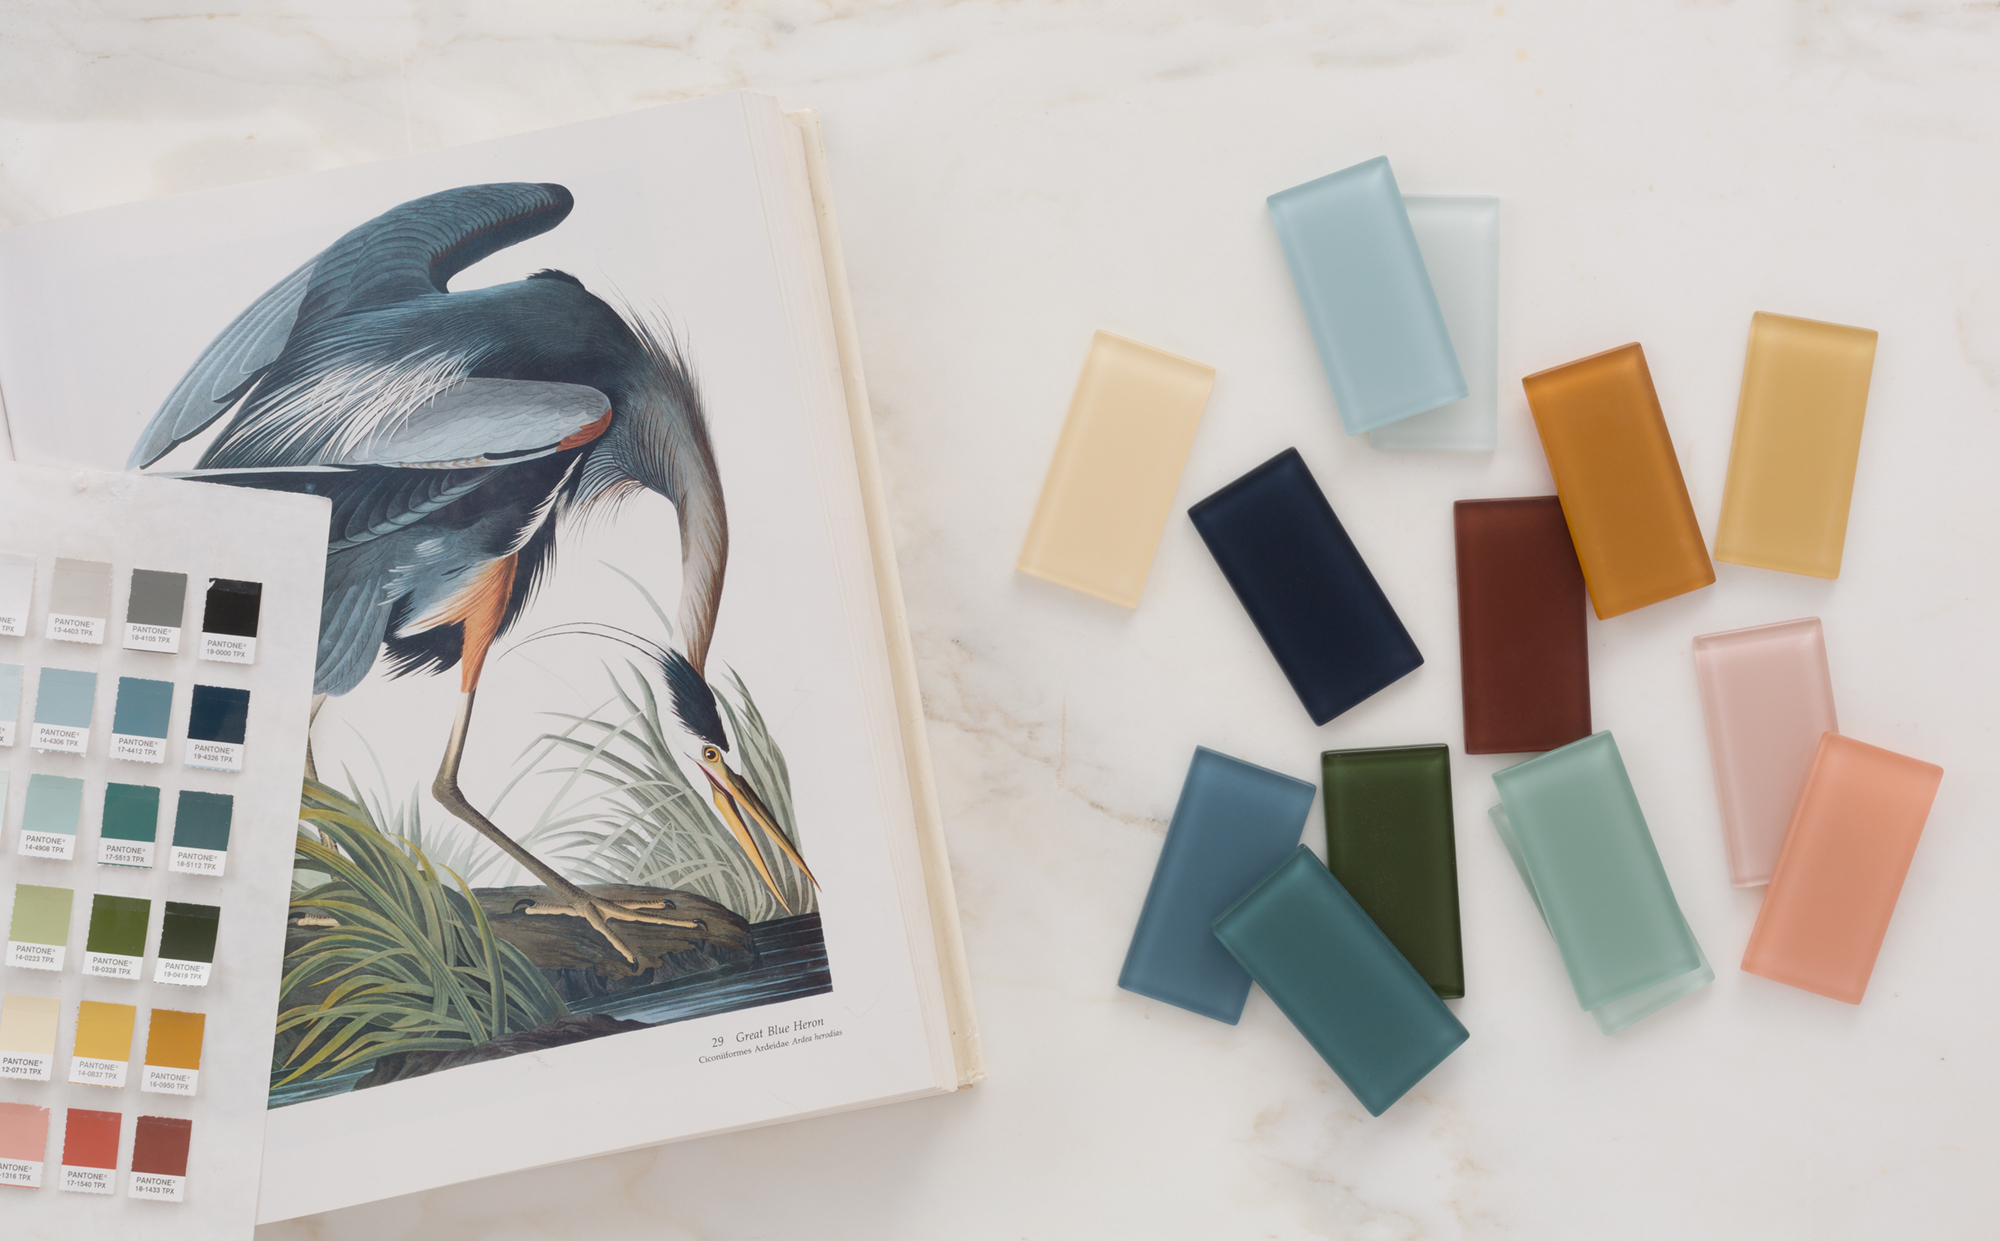 2018_q3_glass_2x4_colors_pantone_swatches_bird_illustrated_book_marble.jpg?mtime=20180927102939#asset:410266